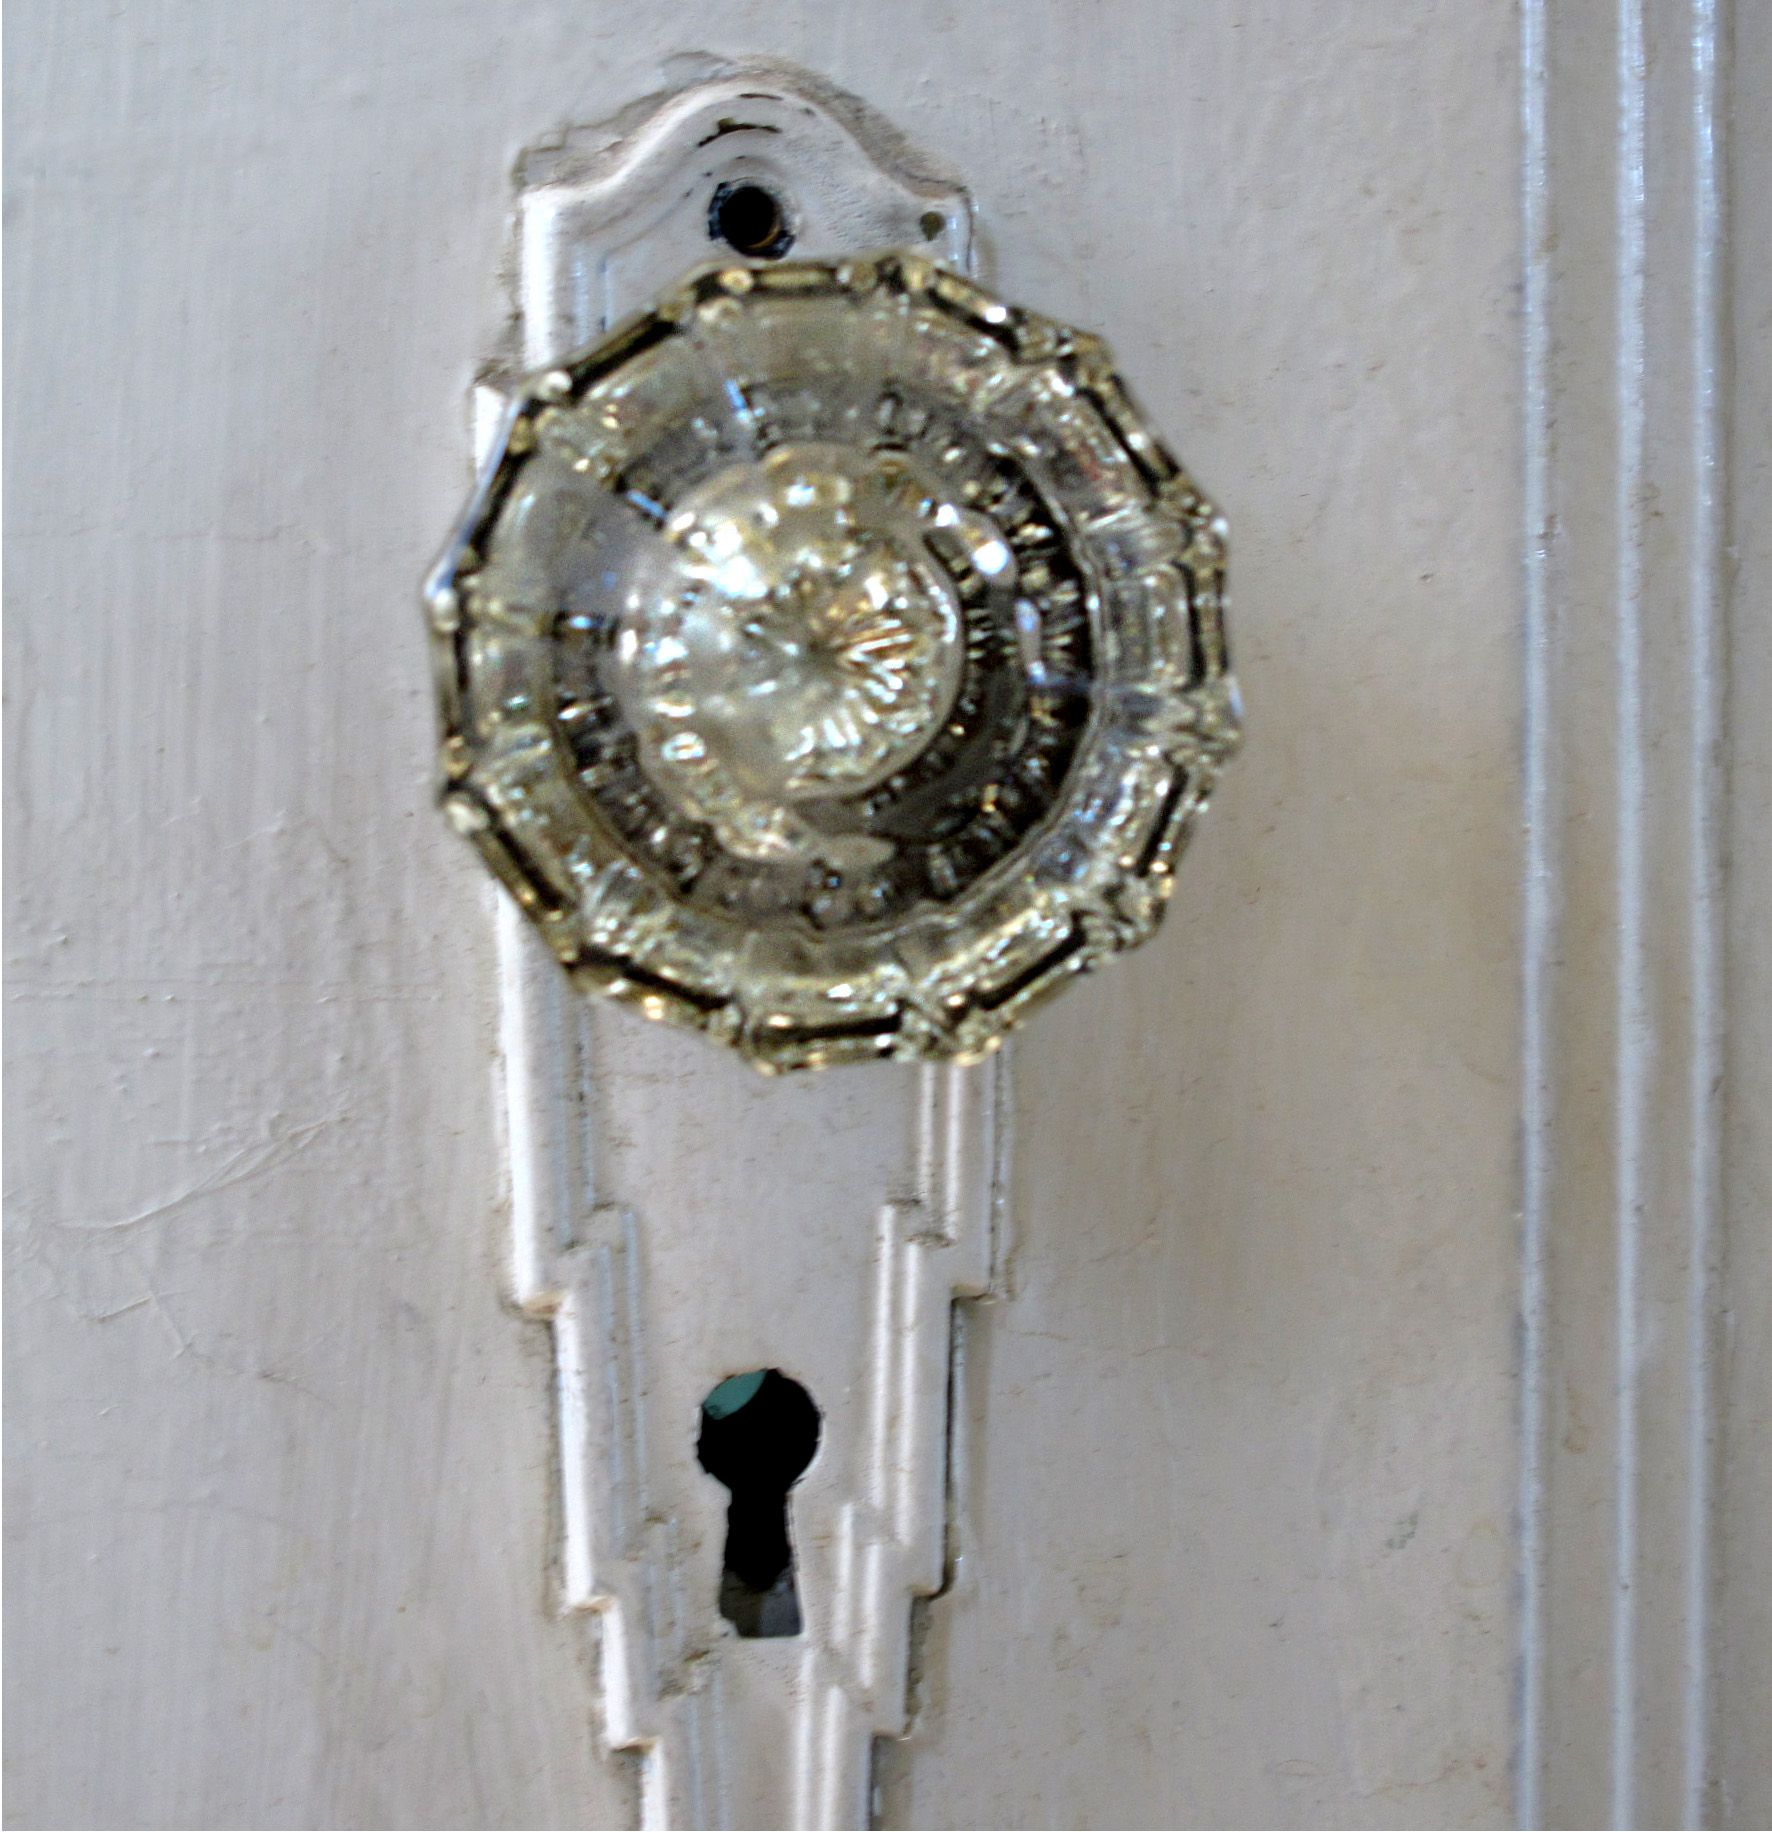 antique uk glass handle lock and full of handles size with brass doors drawer knobs vintage hardware old lever door fashioned